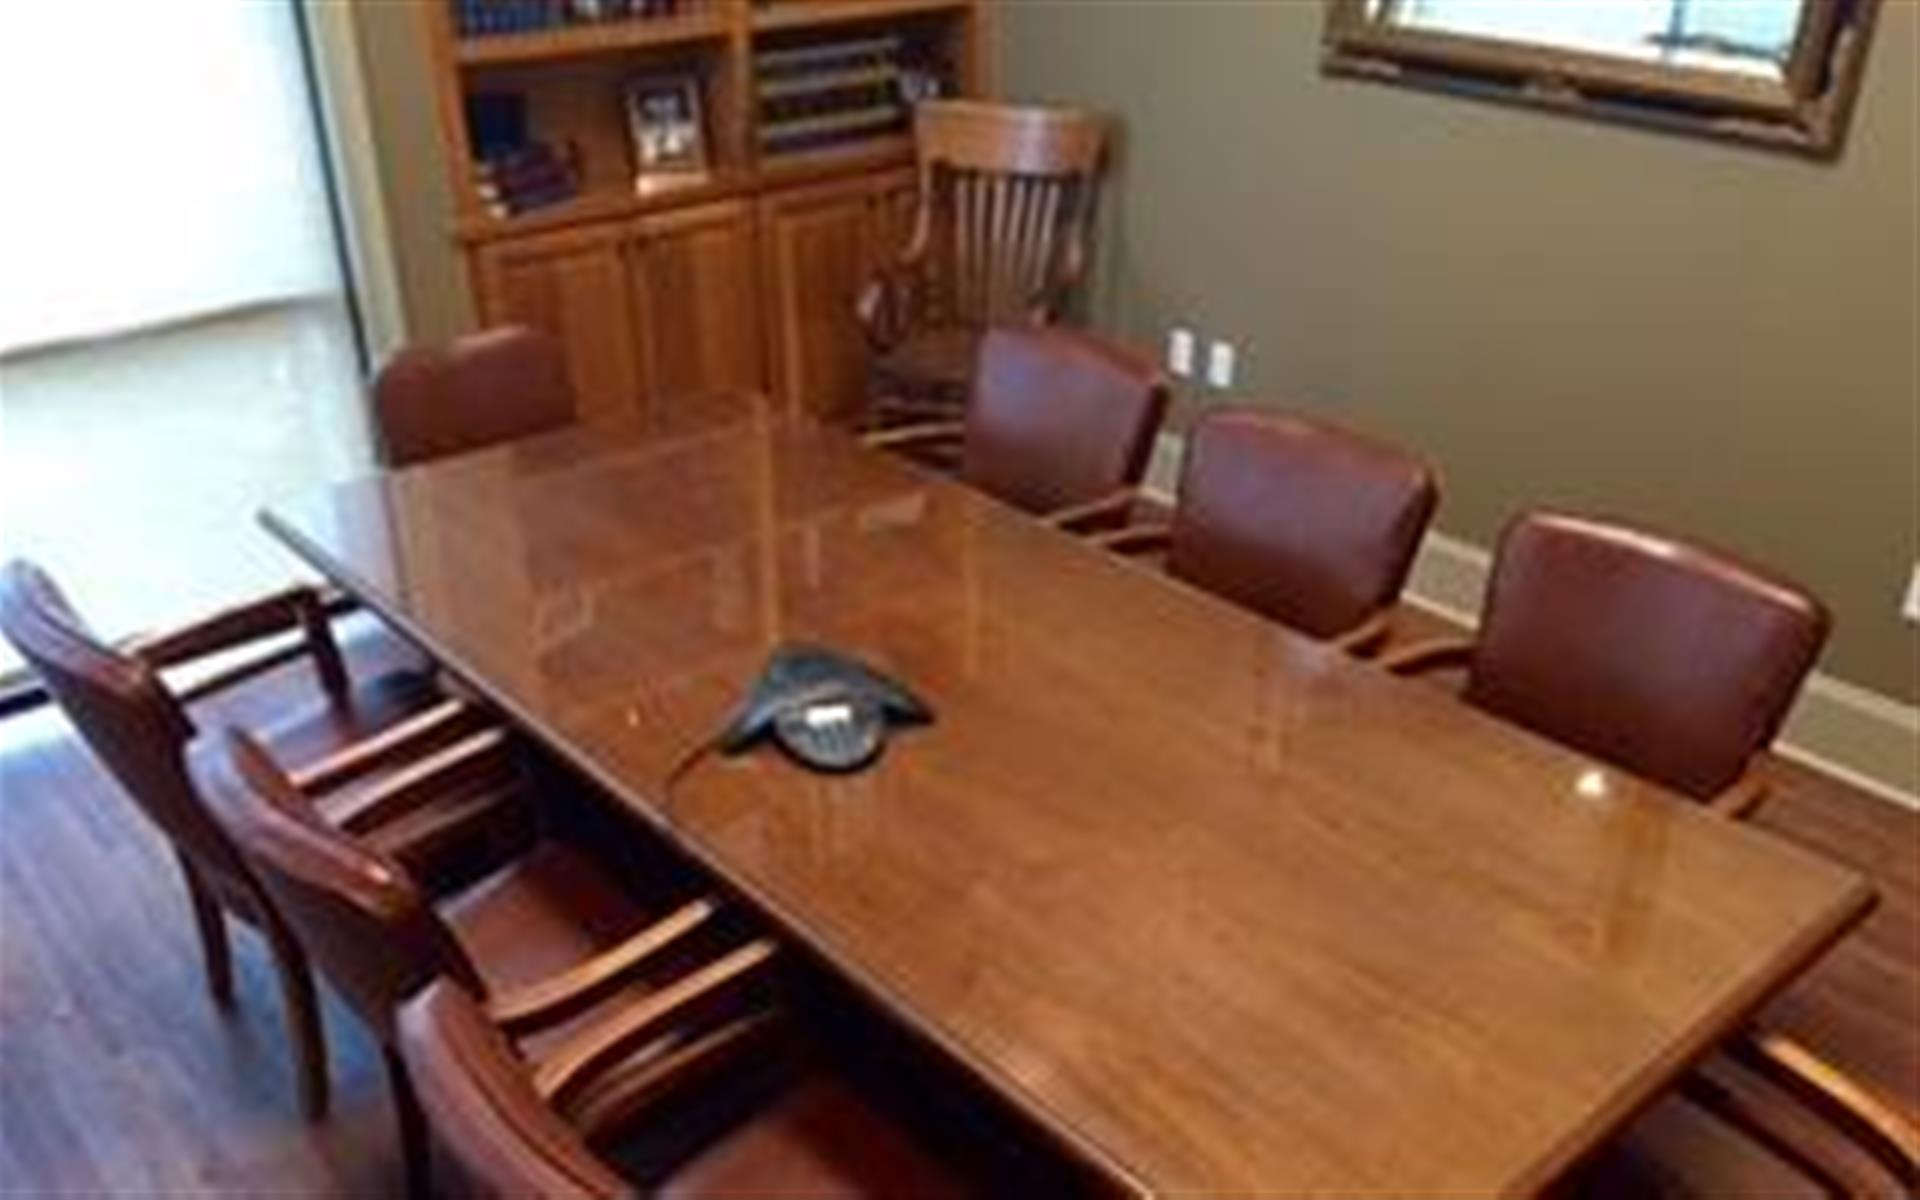 Louisiana Retailers Association - Executive Board Meeting Room for 8